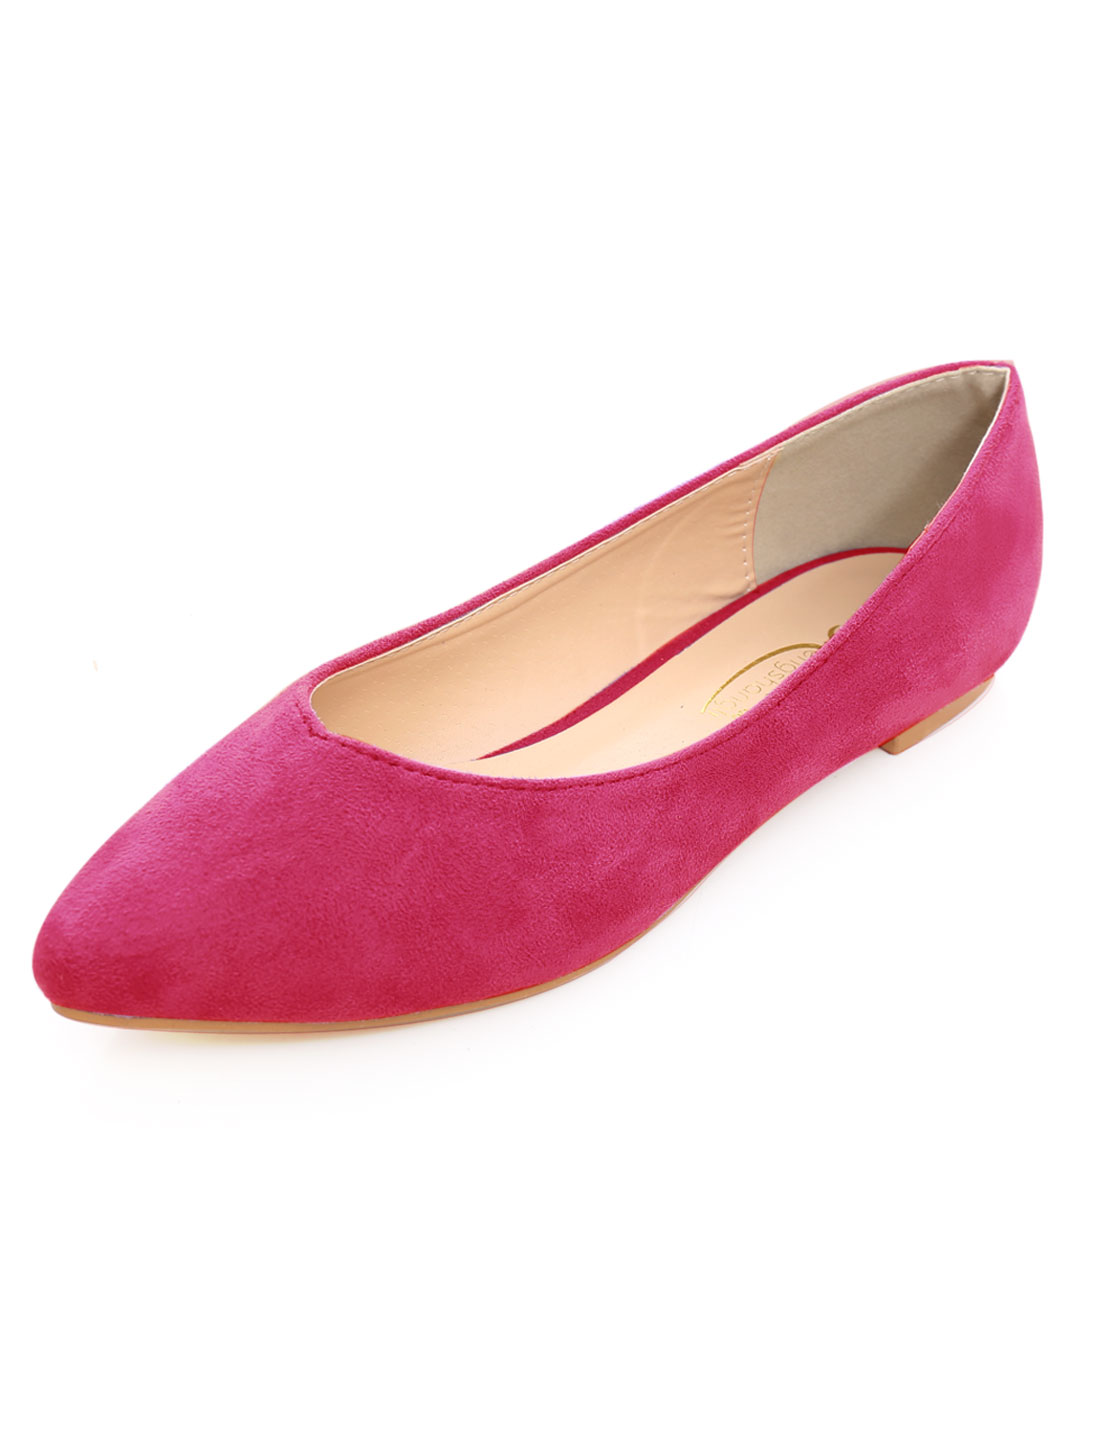 Woman Faux Suede Pointed Slip On Casual Ballet Flat Shoes Fuchsia 8